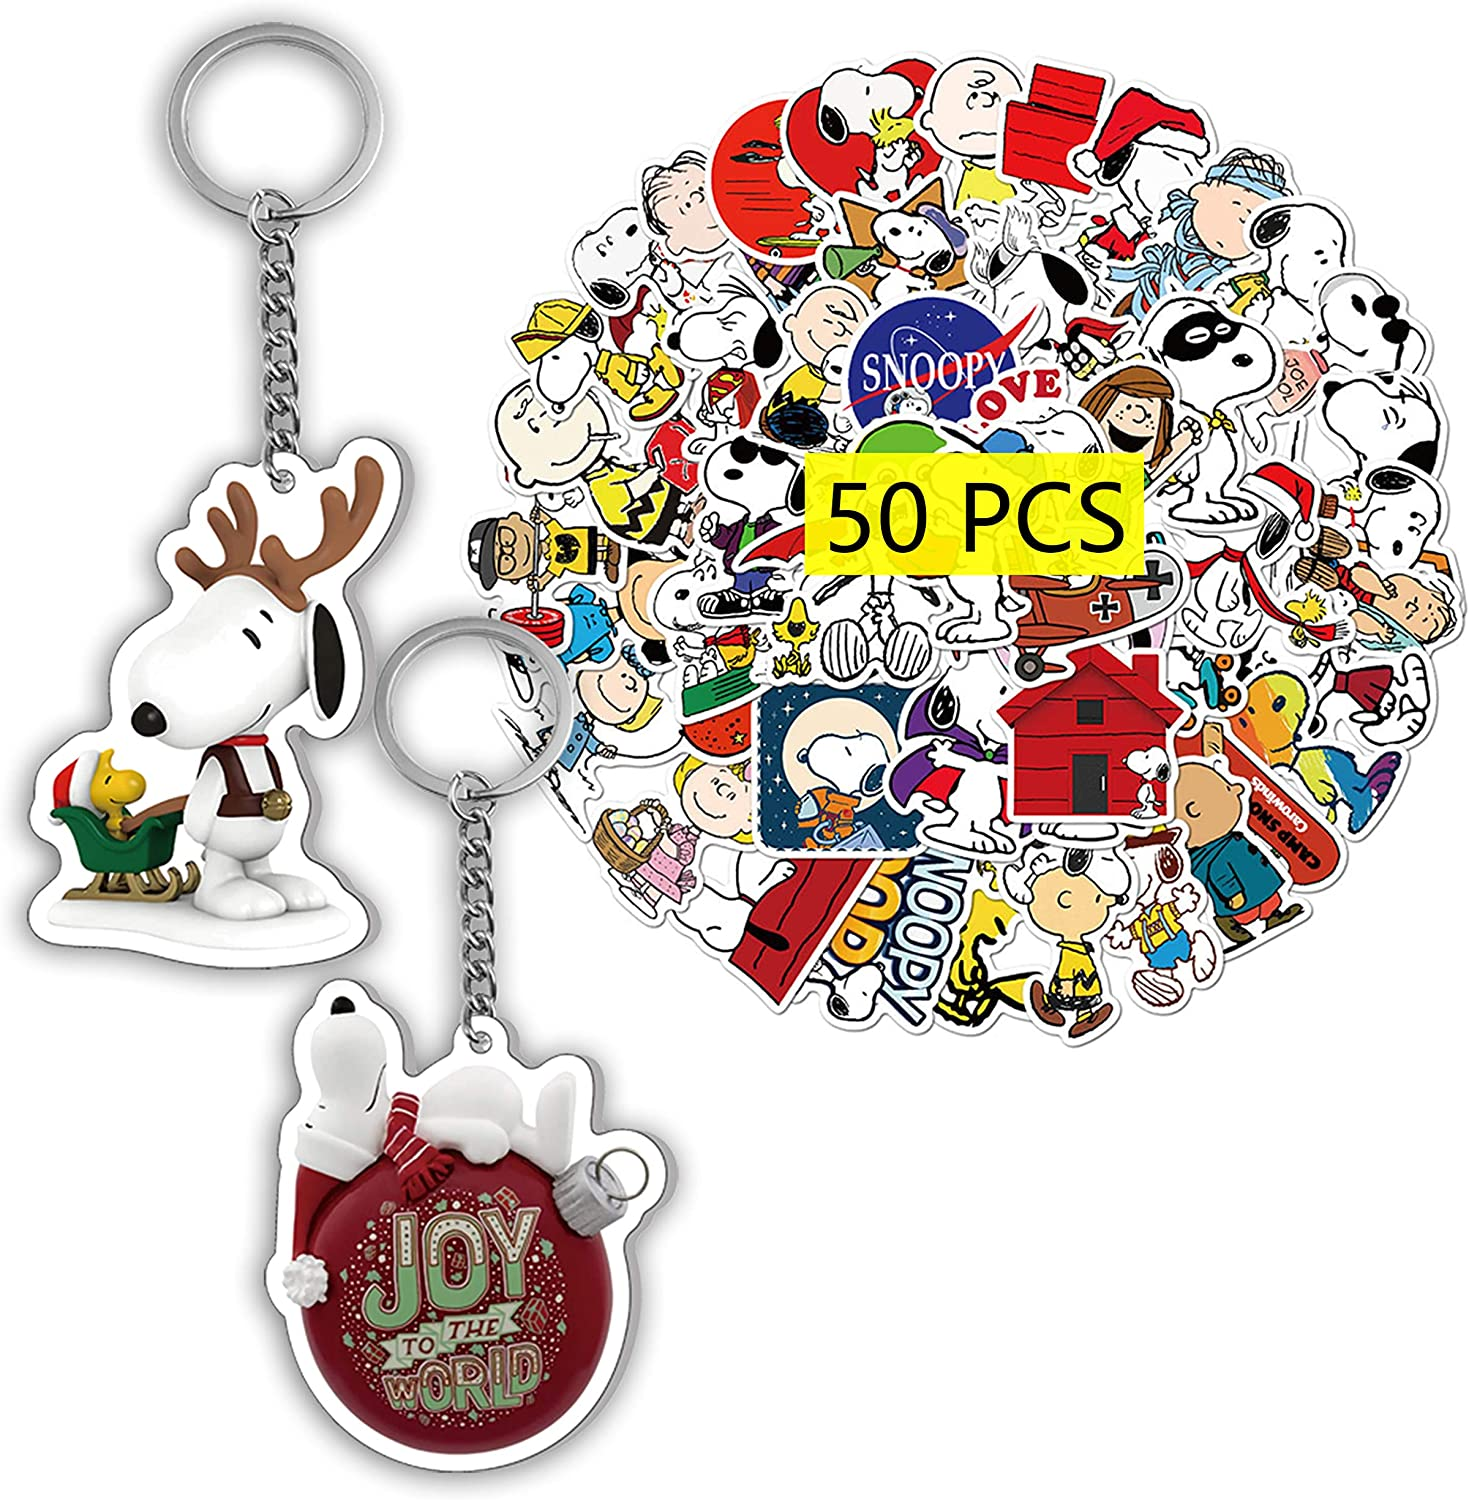 Kilmila Cute Snoopy Stickers 50Pcs(with Snoopy on Decorated Dog House Ornament Keychain ) Cute Stickers Snoopy Christmas Decorations Laptop Stickers